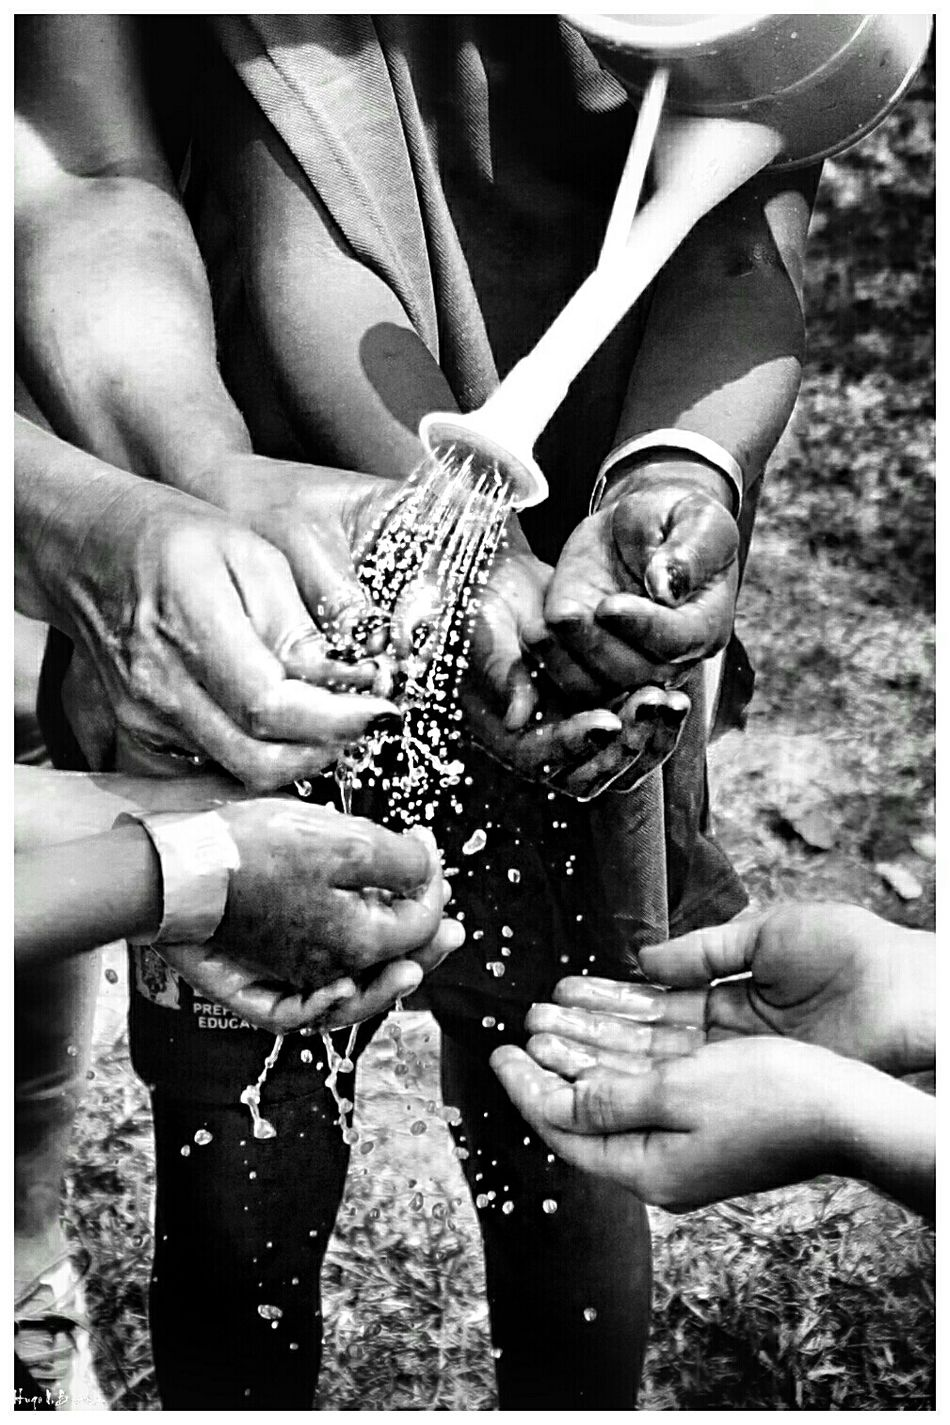 Human Hand Togetherness Social Photography Black & White Leisure Activity Black And White Children School Social Documentary School Life  Children Photography Freshness Cheerful People Close-up Happiness Light And Shadow Splashing Waterdrops Water_collection